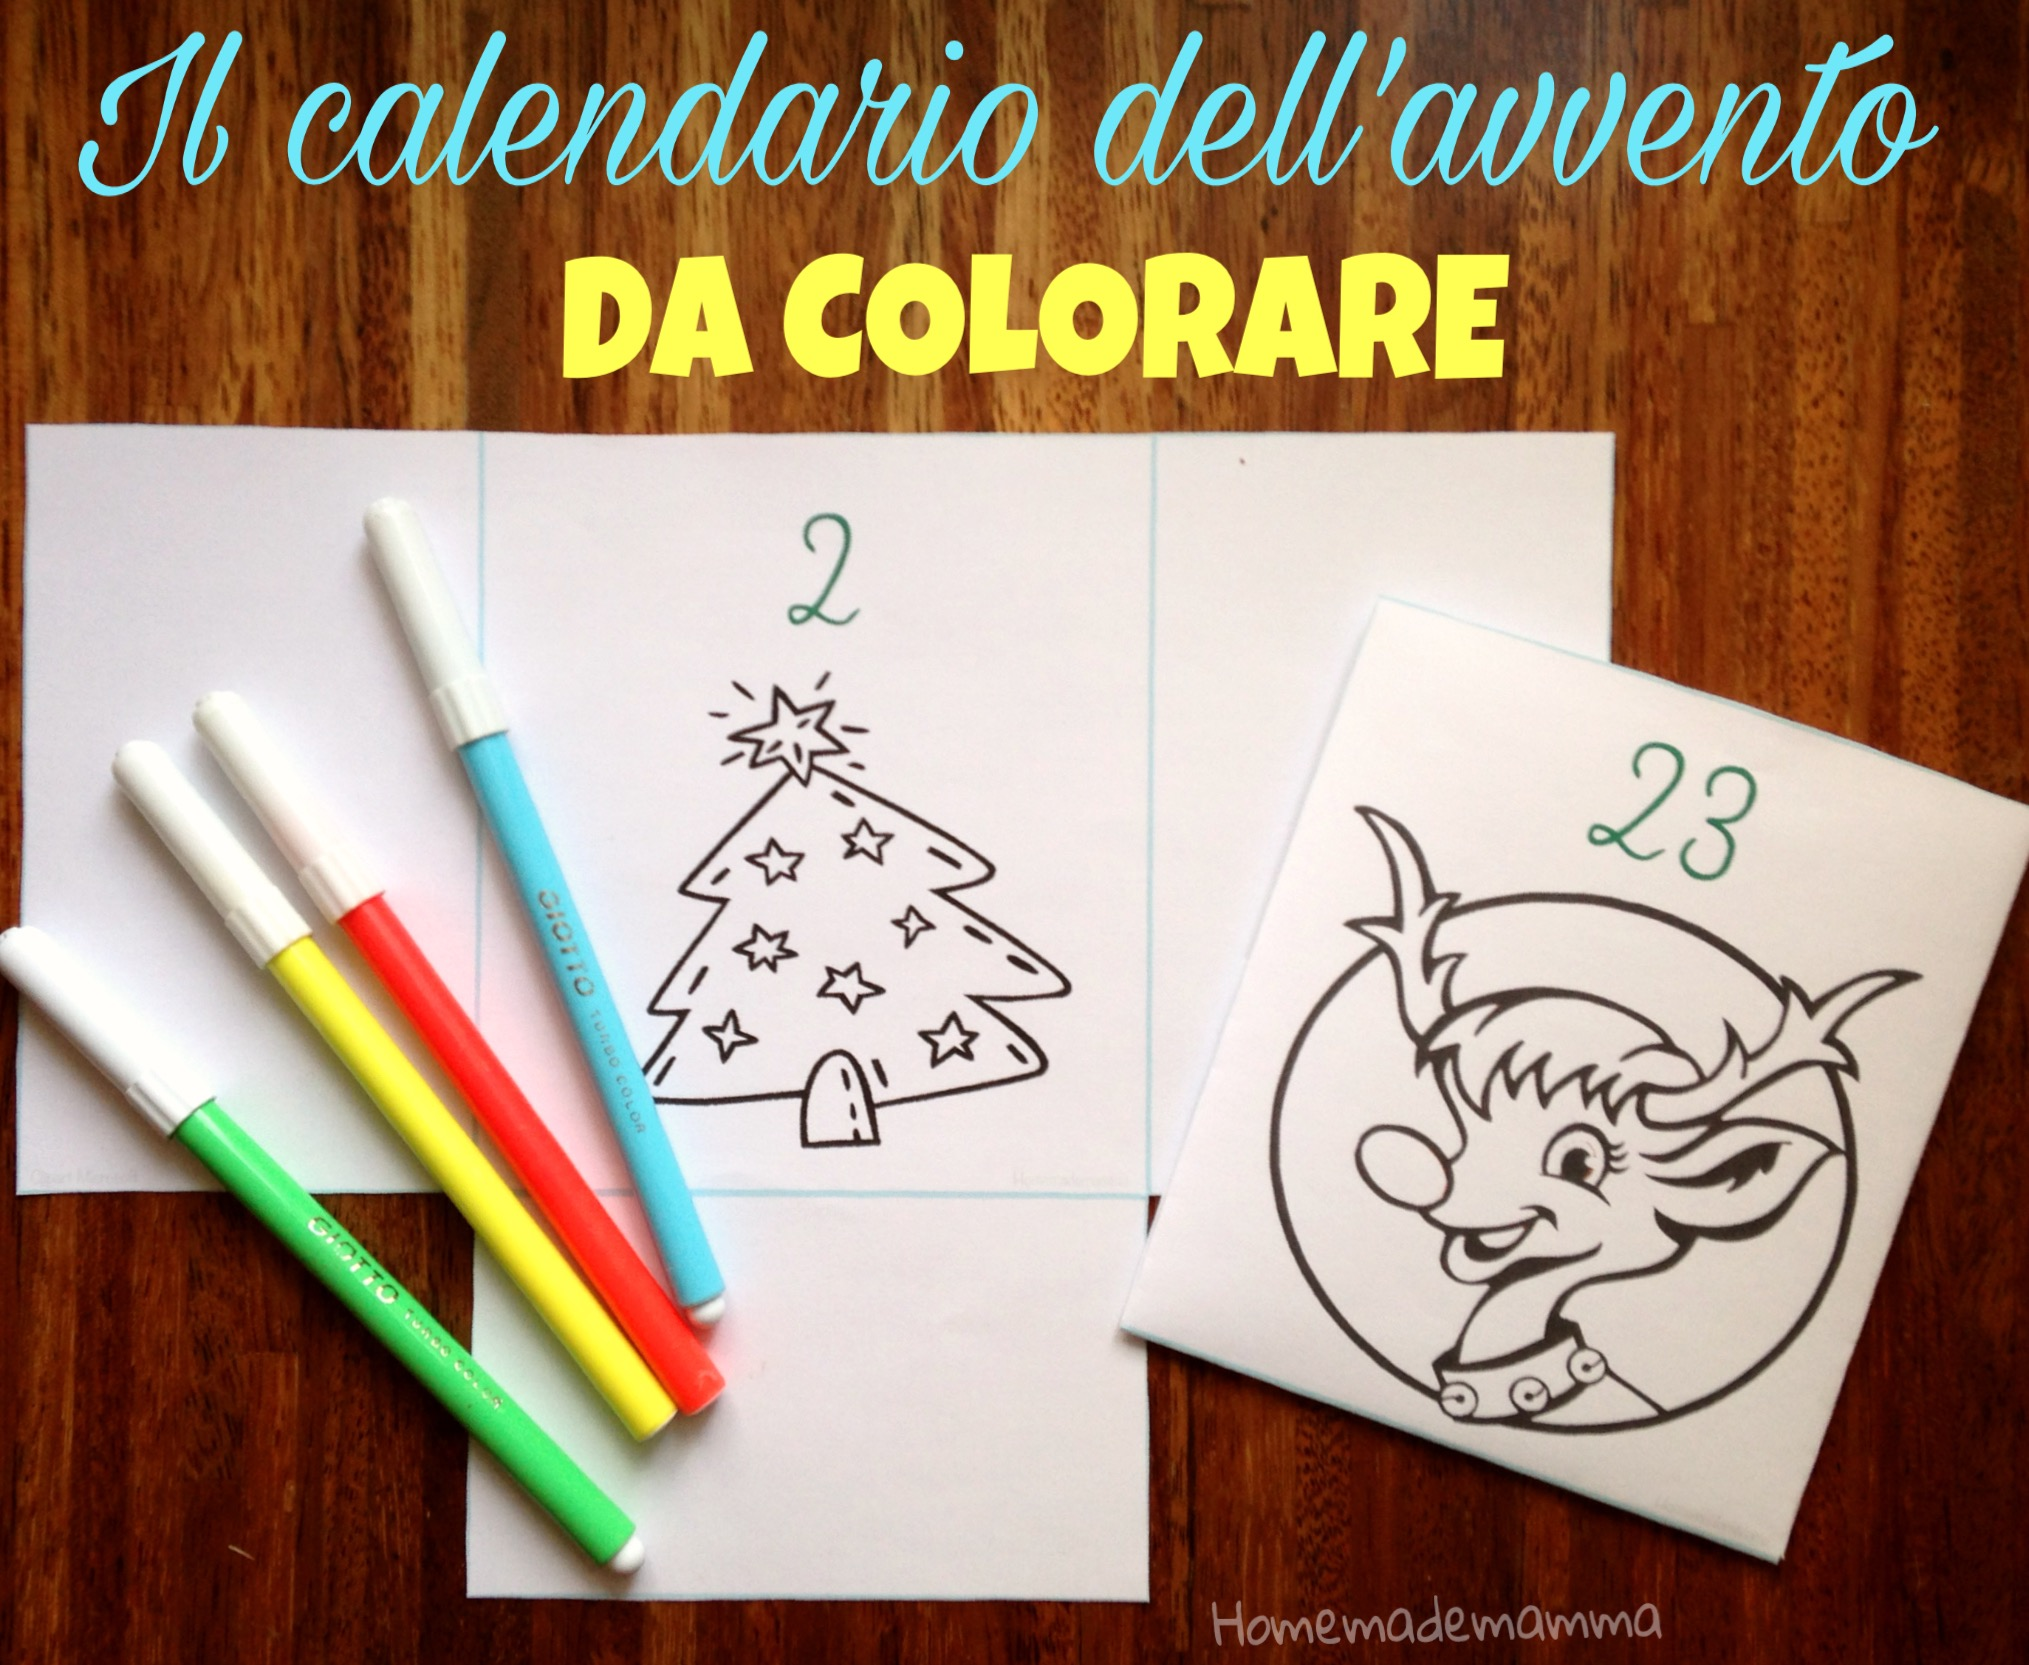 calendario avvento da colorare homemademamma